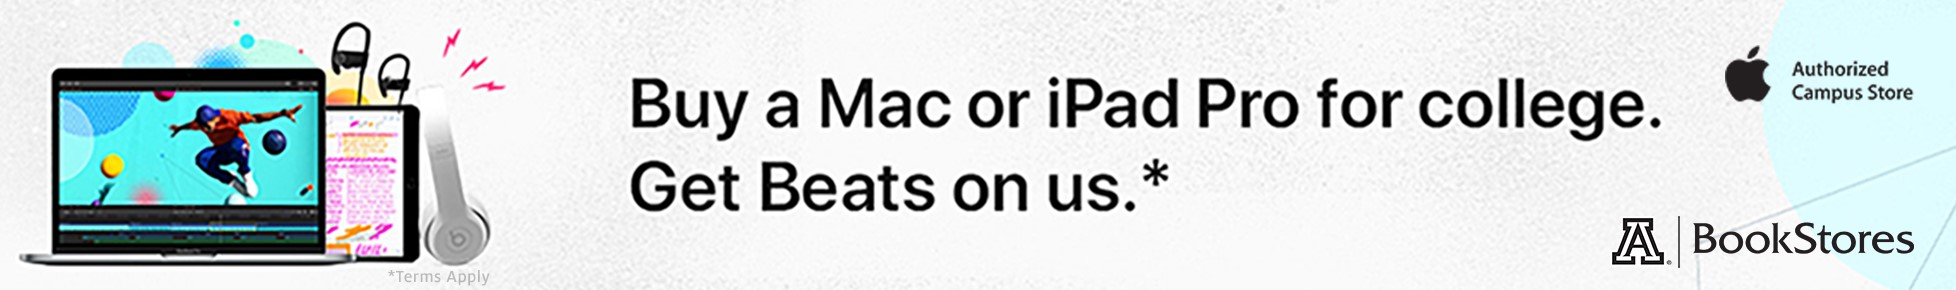 Buy a Mac or iPad Pro for college. Get Beats on us.*